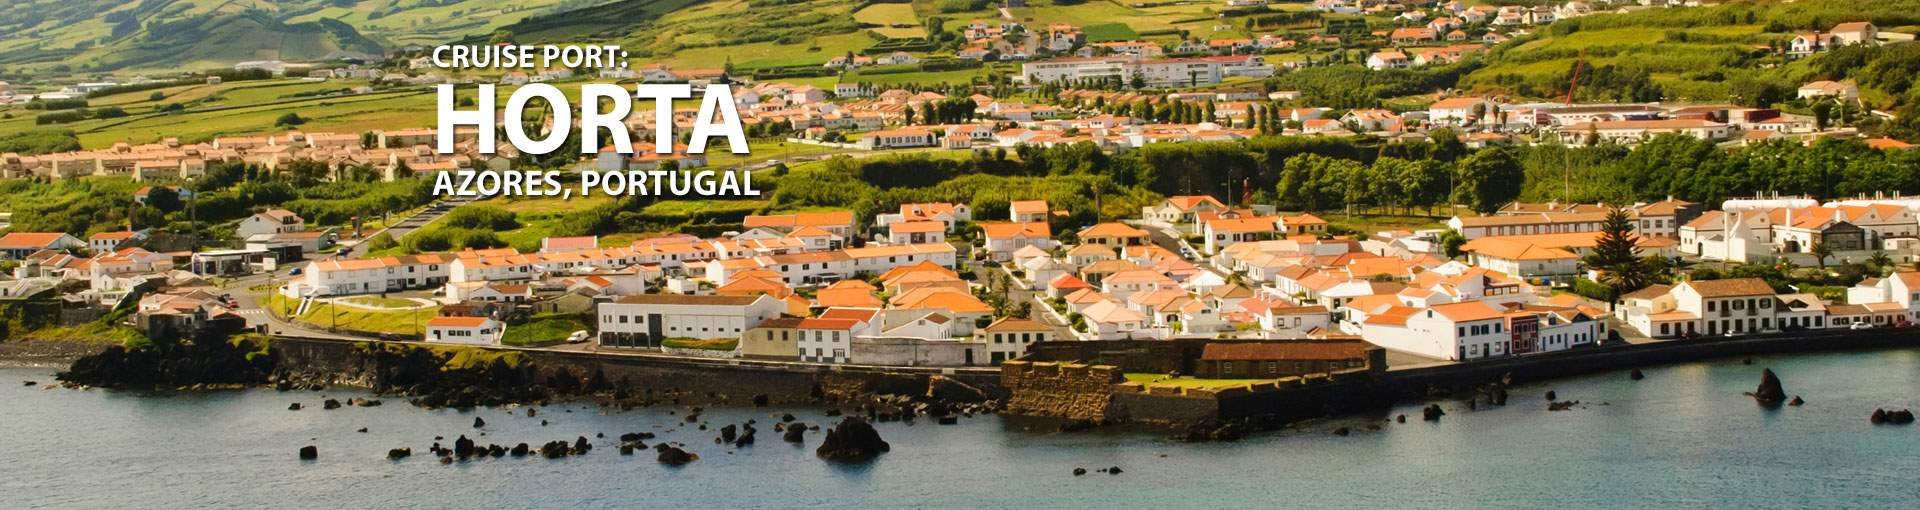 Cruises to Horta, Azores, Portugal